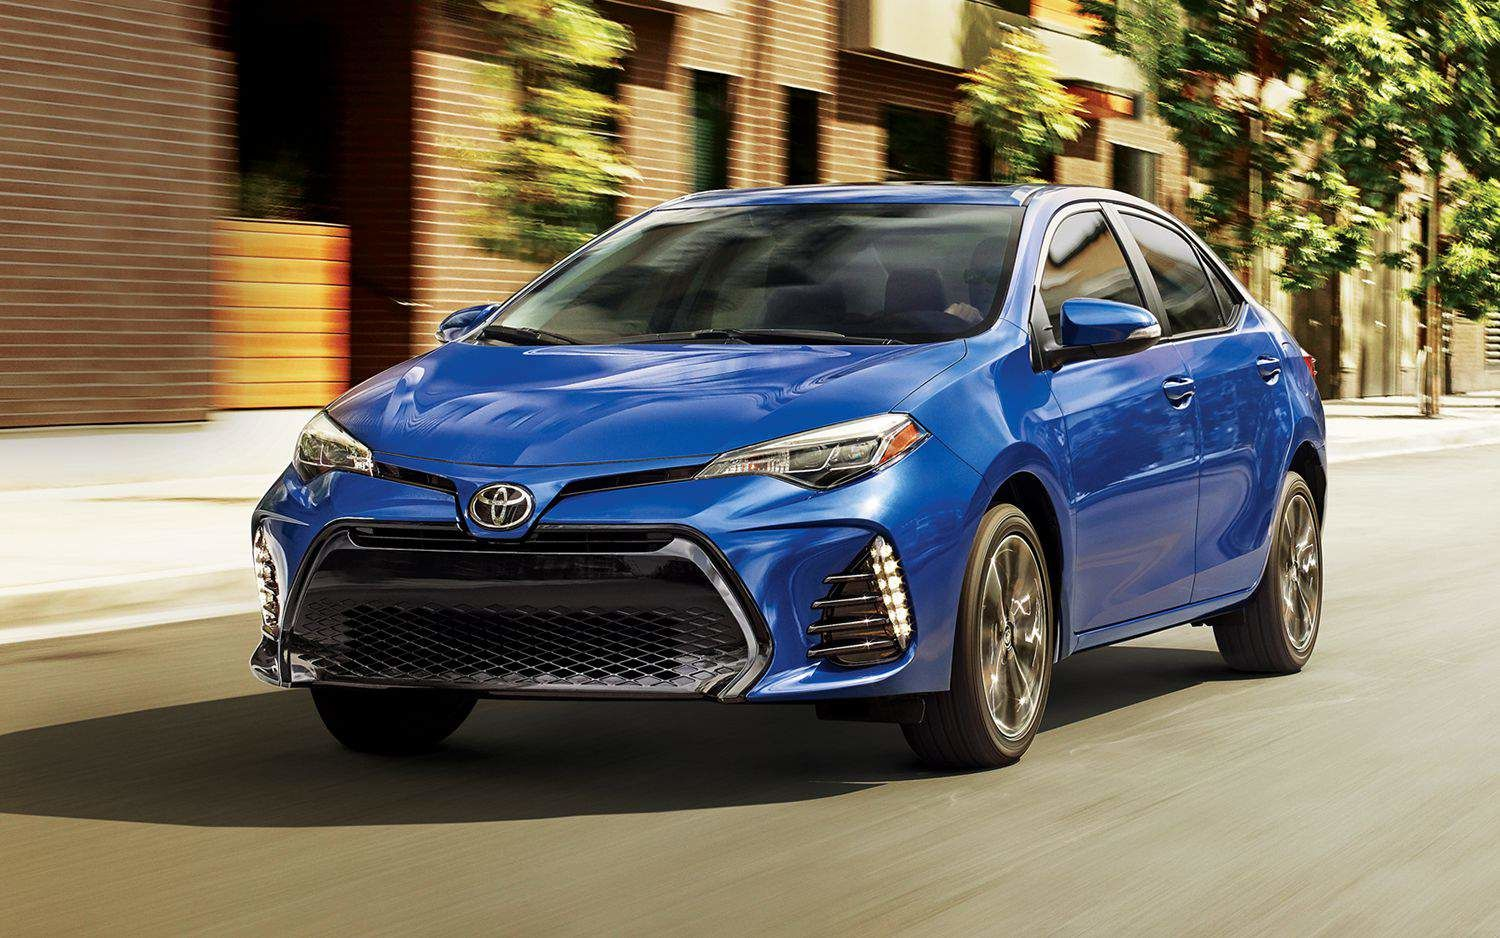 Also Of Note Is The Sound System In The Base Model Of The 2018 Elantra,  Which Only Offers AM/ FM/ MP3 While The 2018 Toyota Corolla Has AM/ FM/  MP3/ WMA And ...